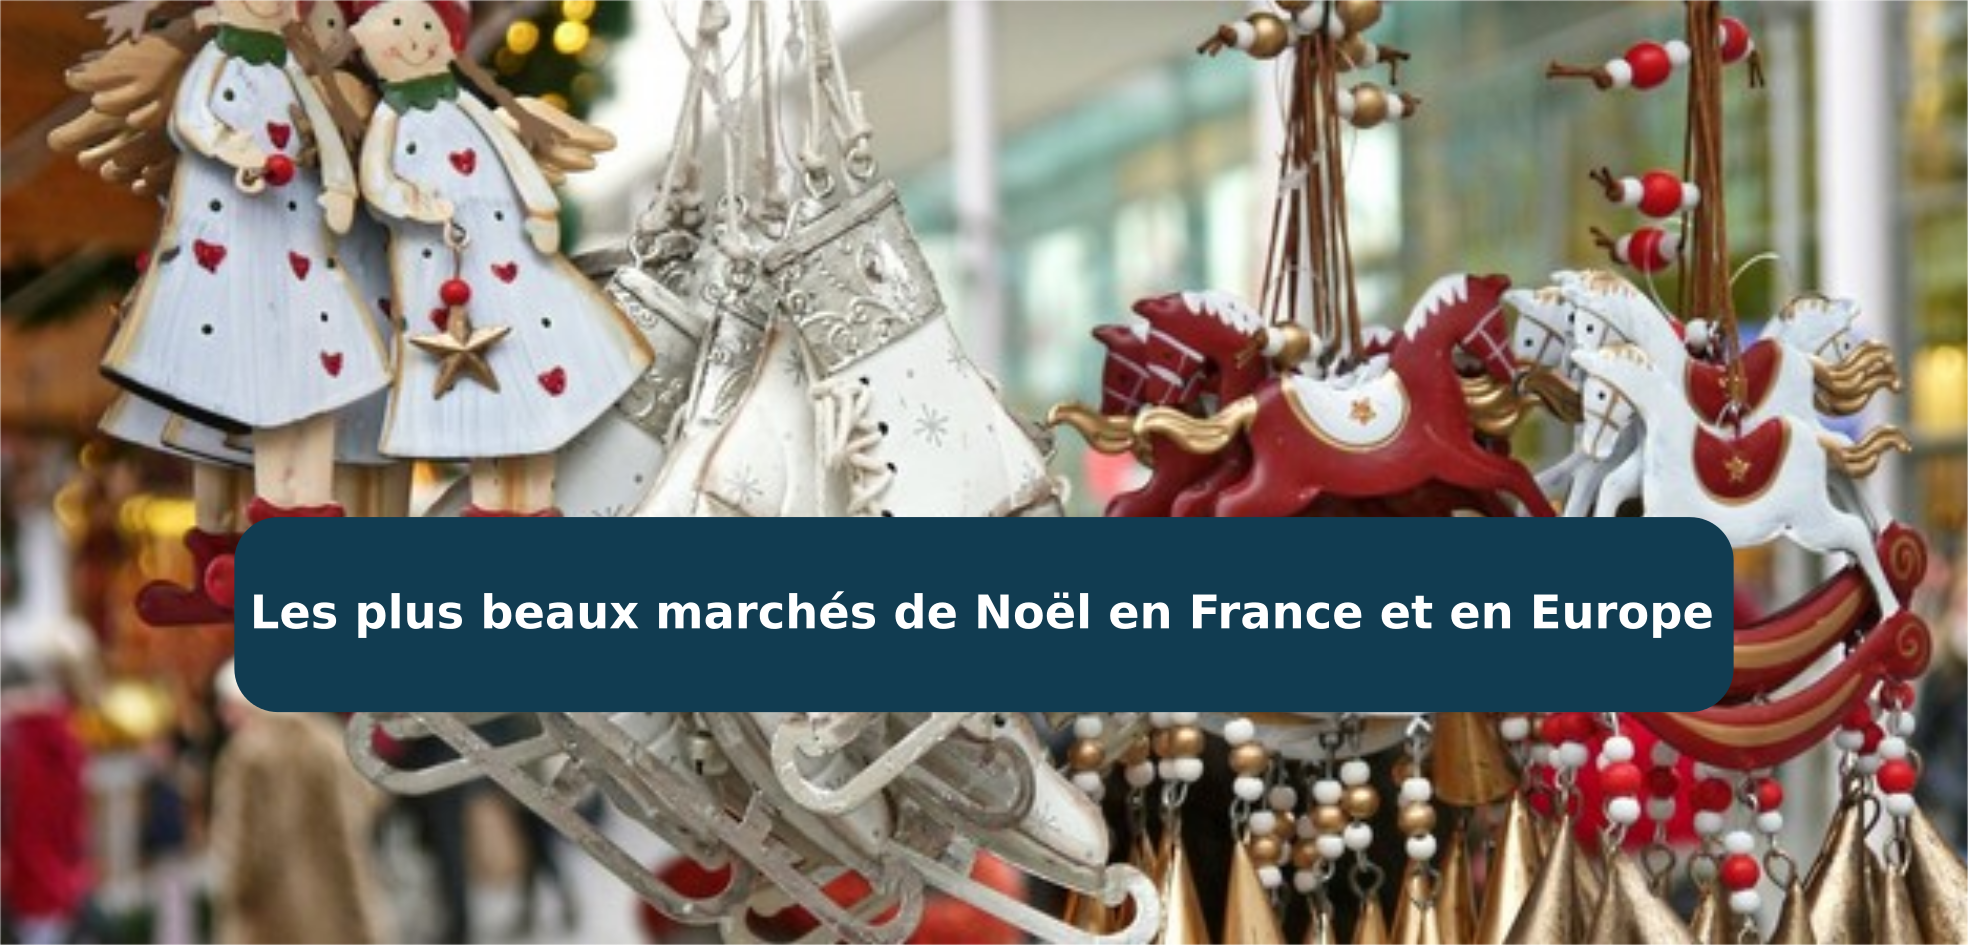 Les plus beaux march s de no l en france et en europe 2016 - Marche de noel thann ...